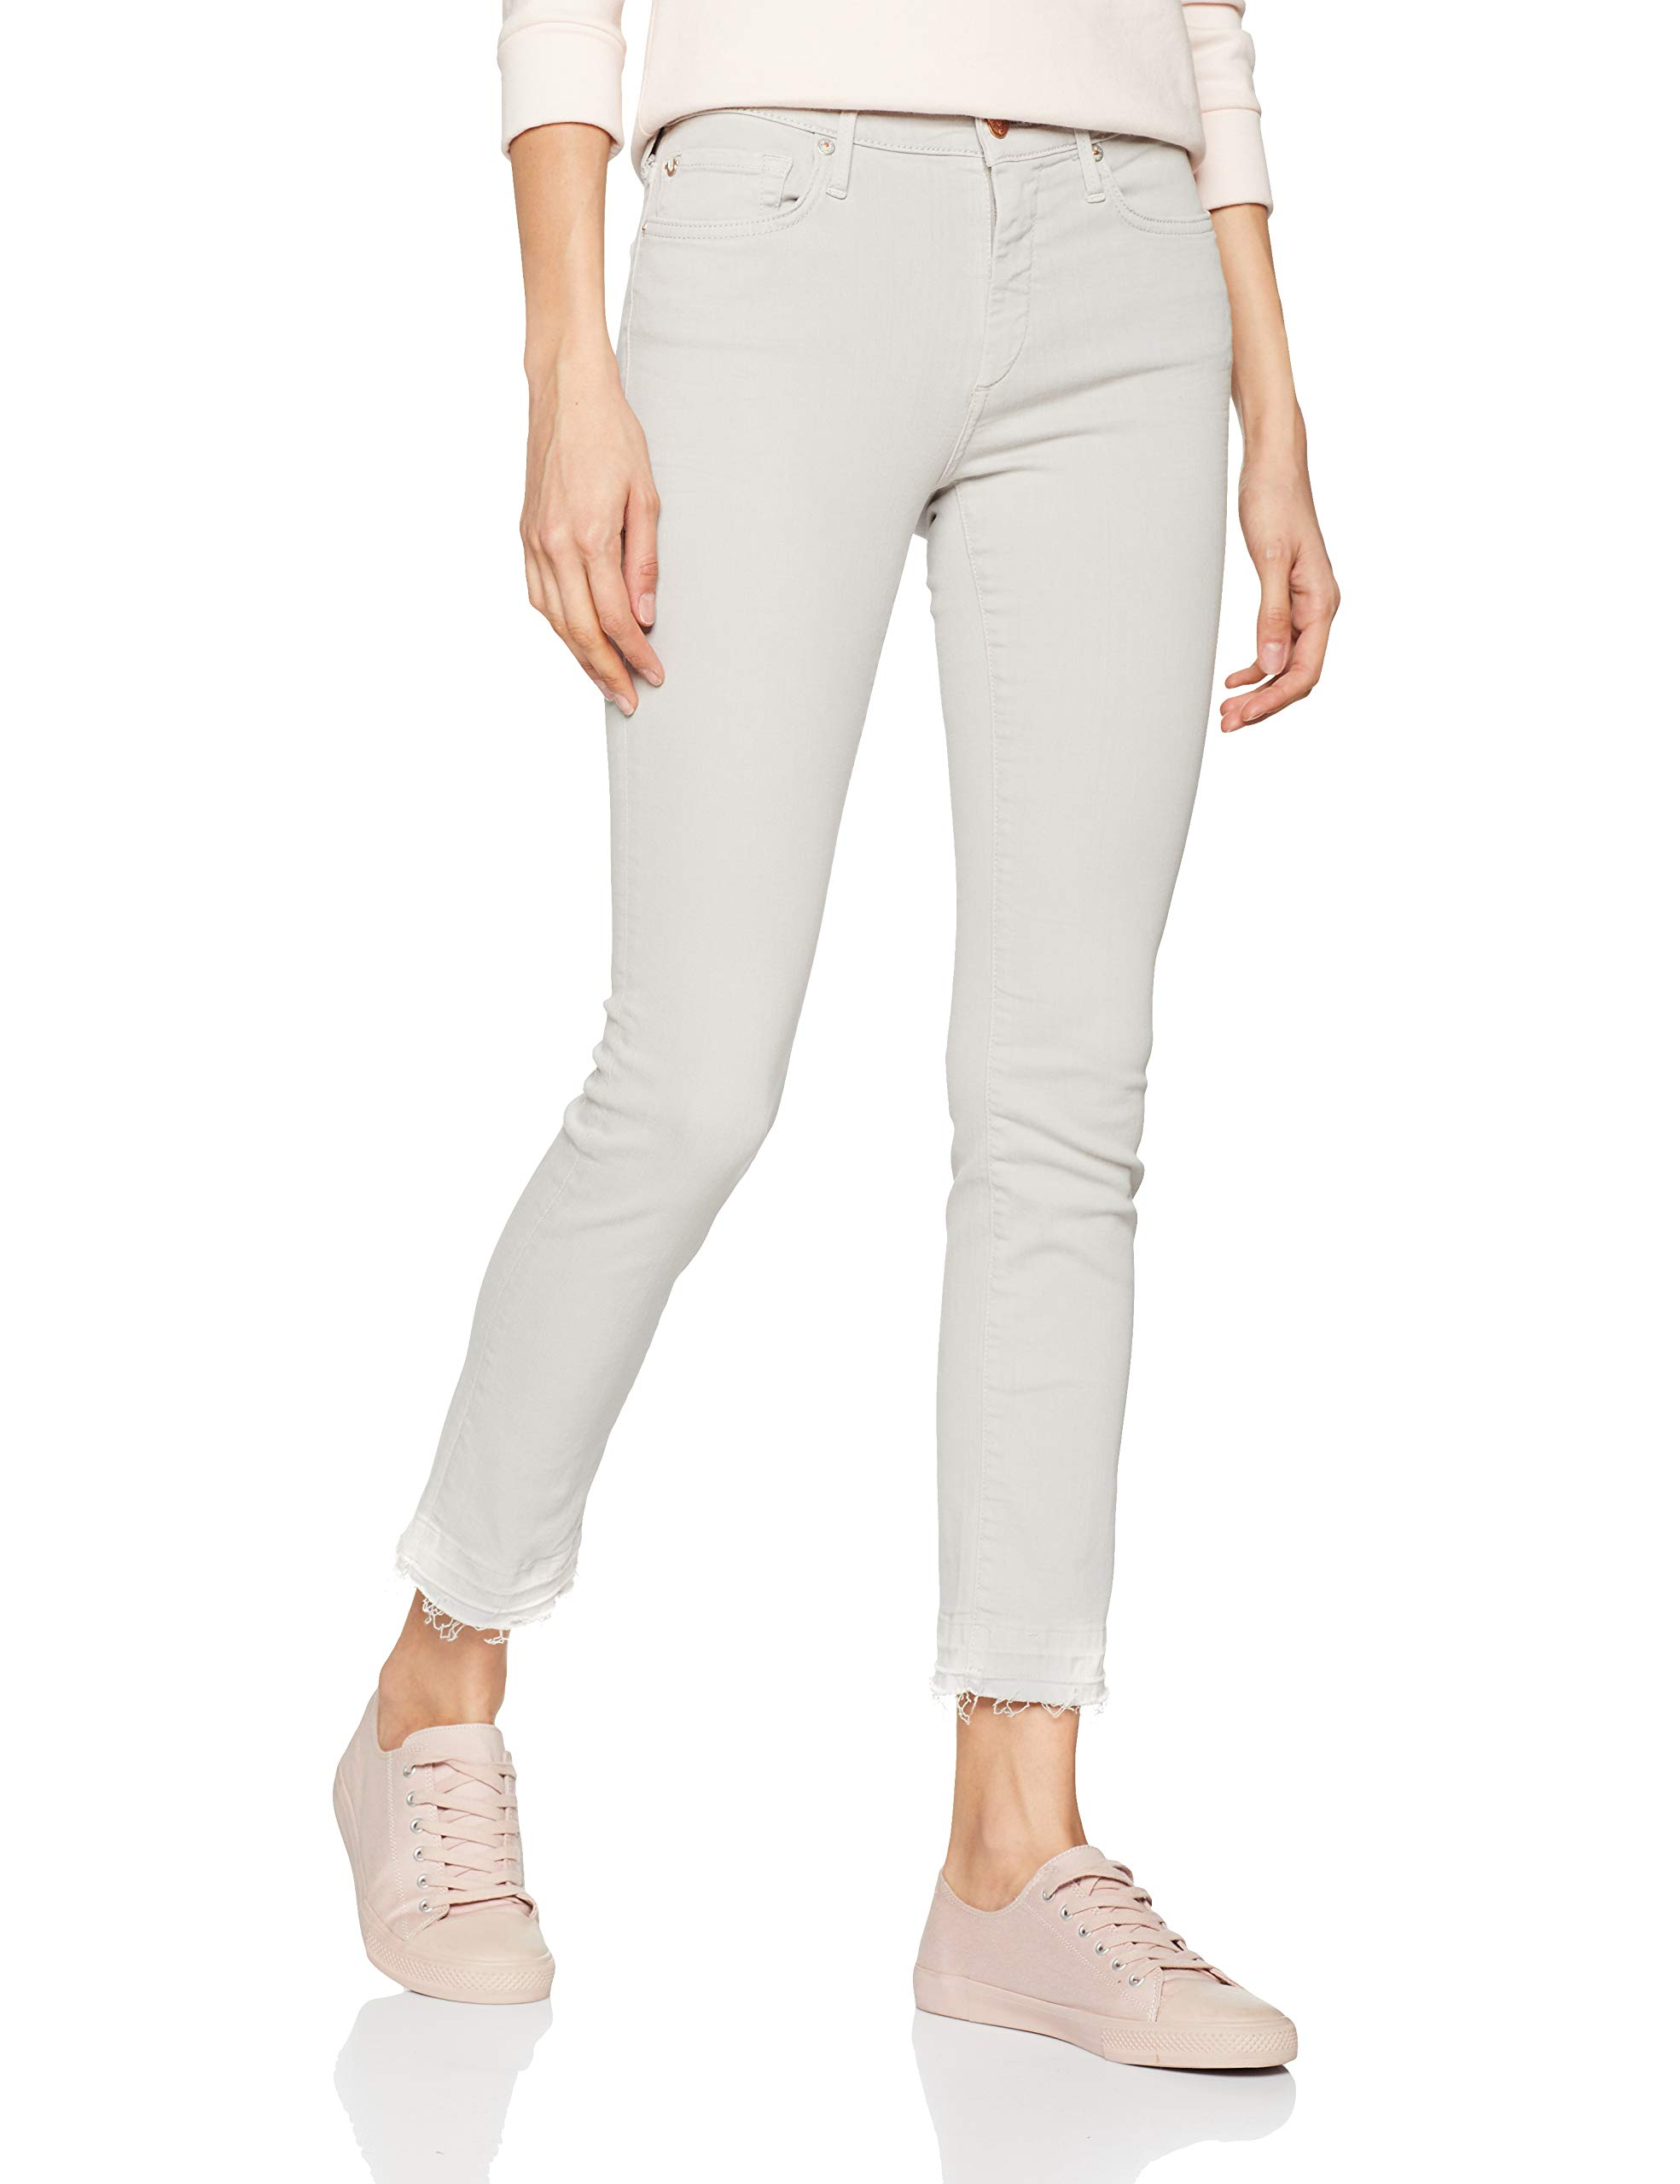 True l32taille Modfit Jean 4101W30 Religion Highrise SkinnyGris Halle Fabricant30Femme xCBoQtrhds